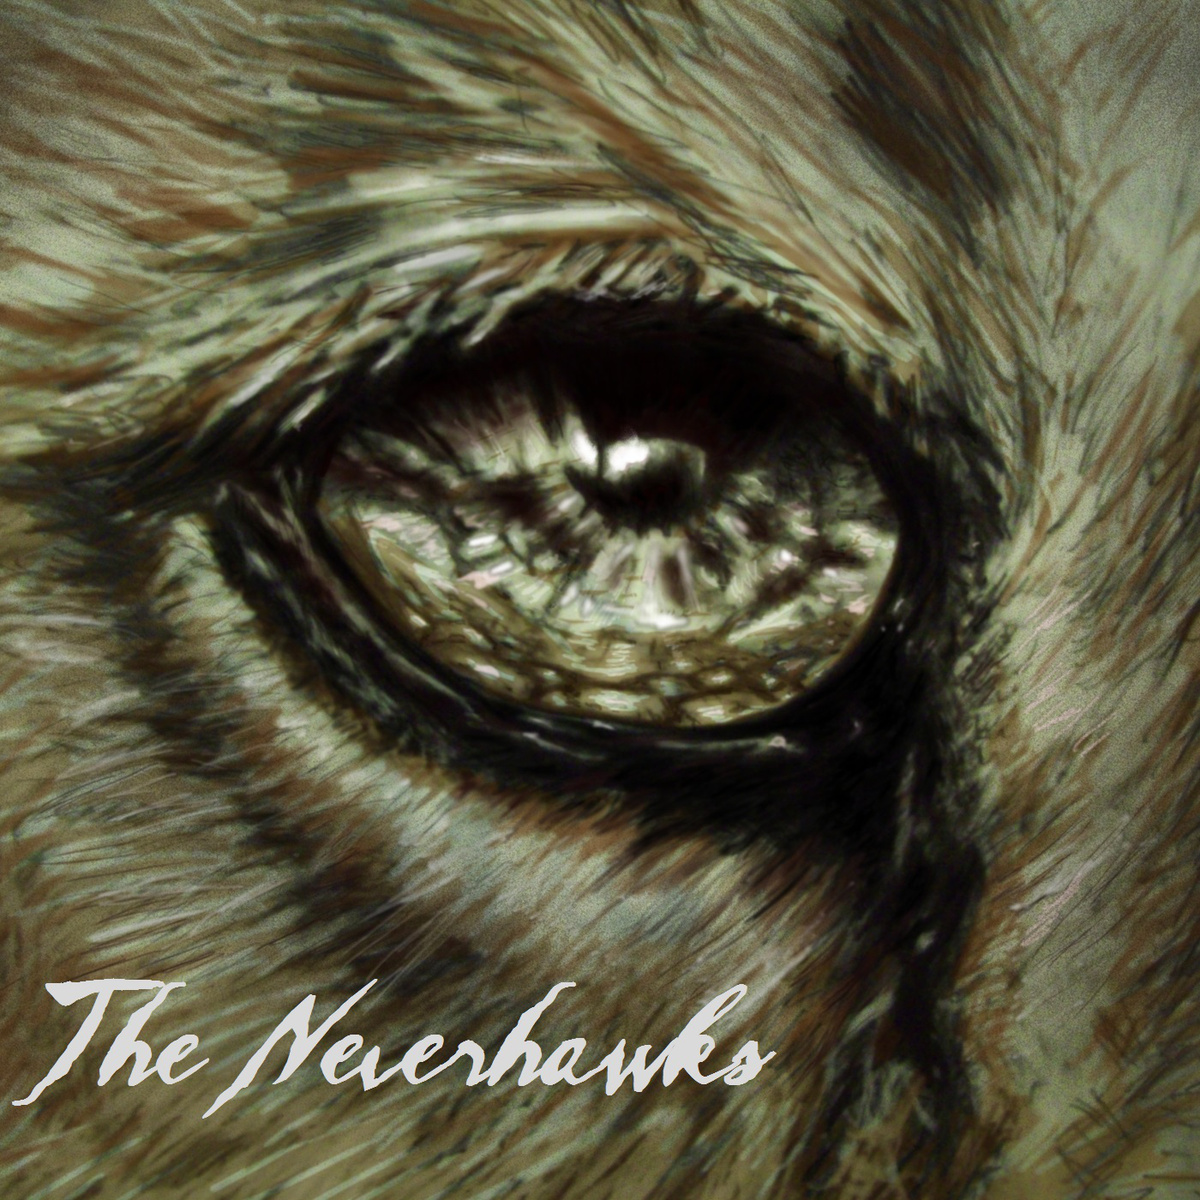 The Neverhawks / Lonely Lion EP: Producer. Drums. Percussion. BGV's - 2014